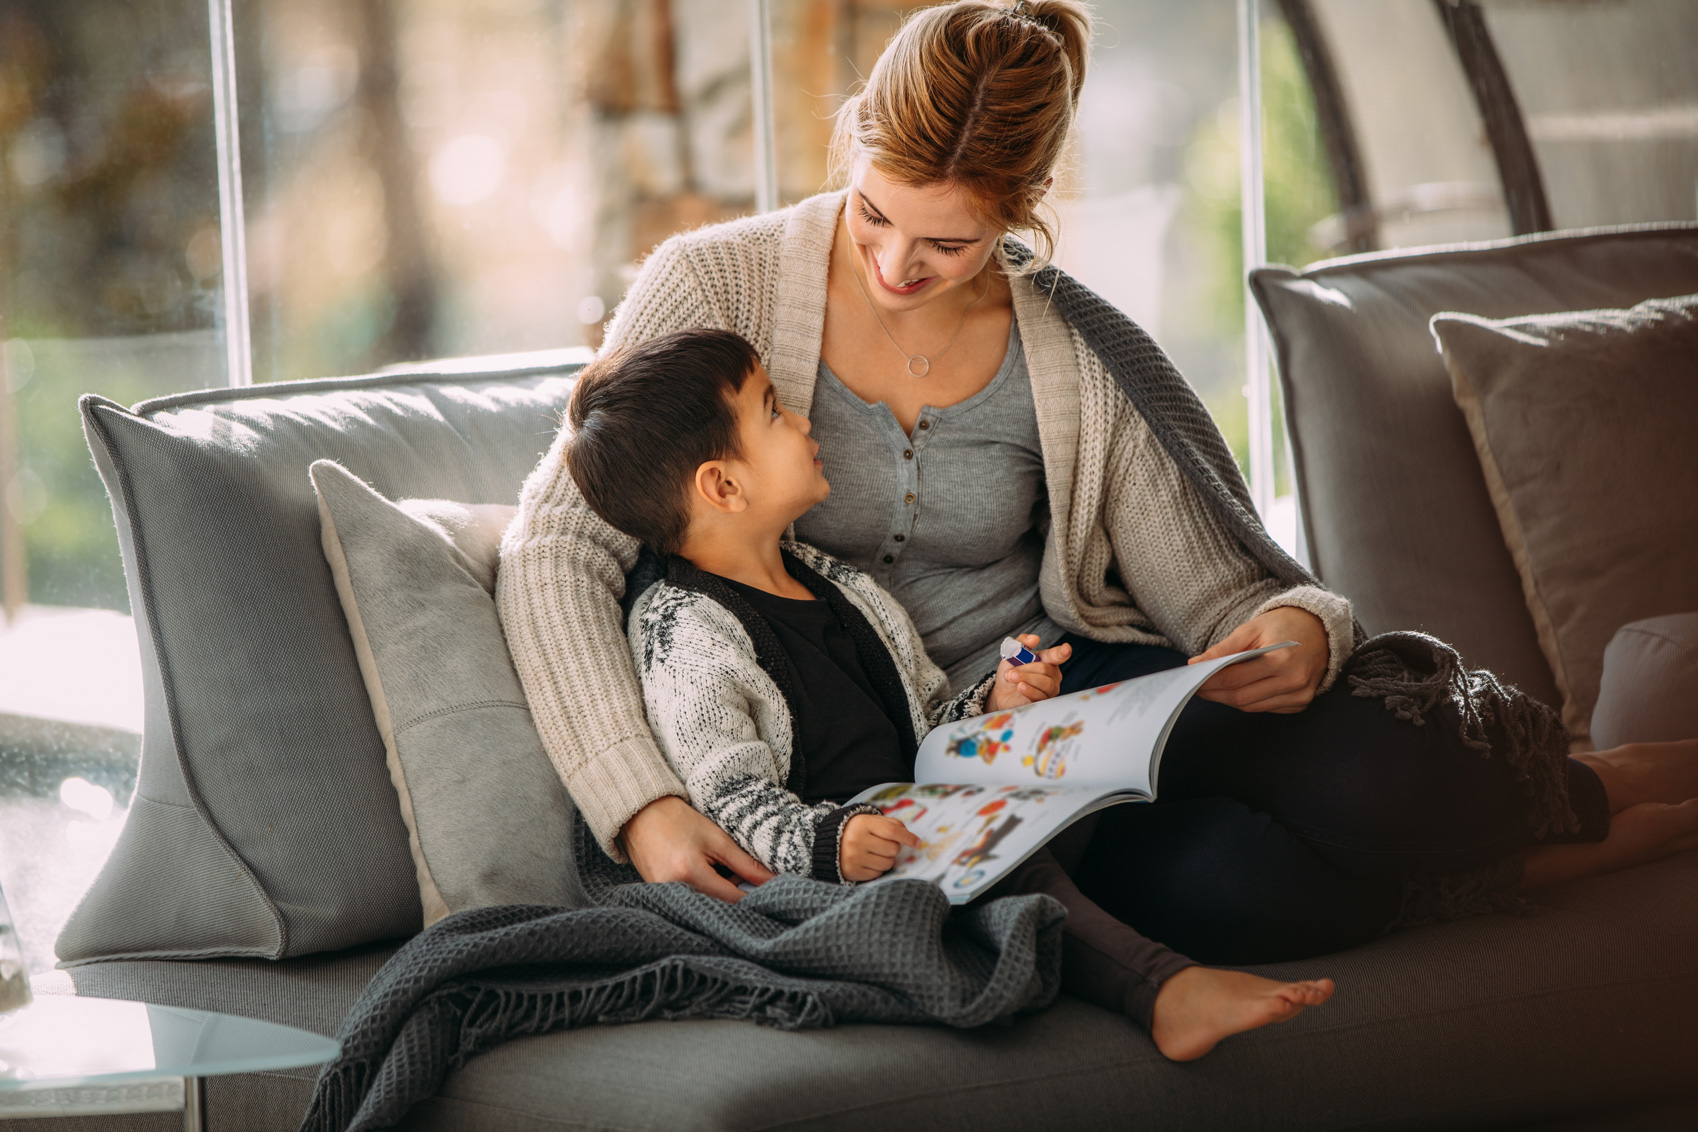 A parent showing their child a book, showing the true goal of Storyline Online.